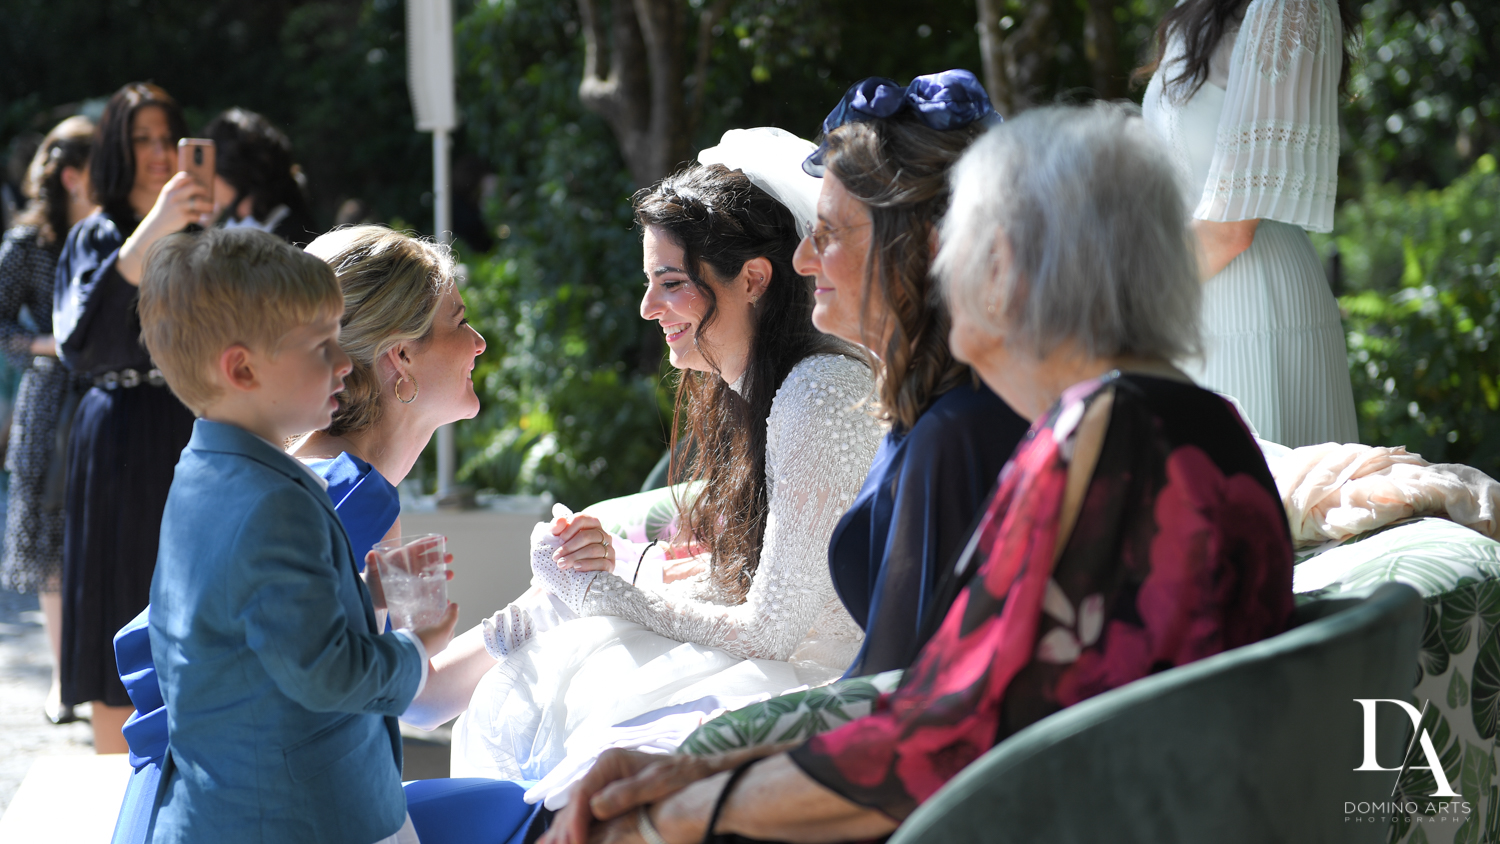 bedeken at Traditional Jewish Wedding at Deering Estate Miami by Domino Arts Photography